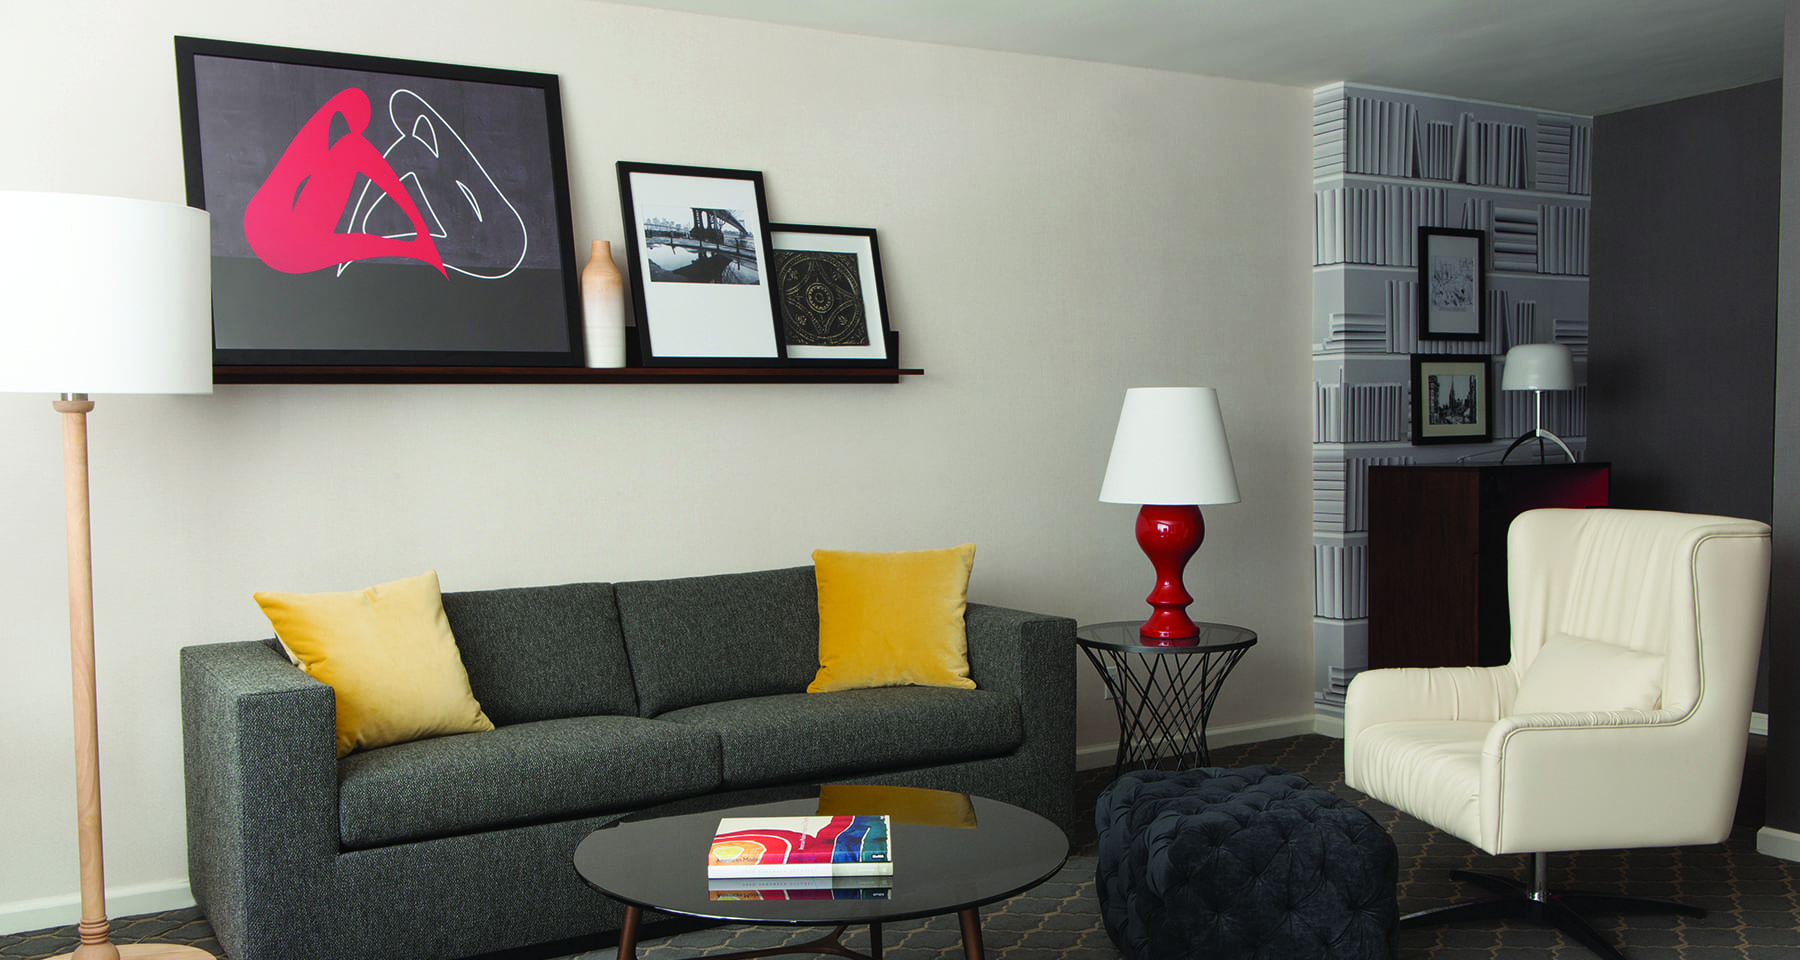 Couch and chair of Fifty Hotel's One Bedroom Suite. A book rests on the round coffee table in front. Framed artwork and photos are placed on a mantle above.